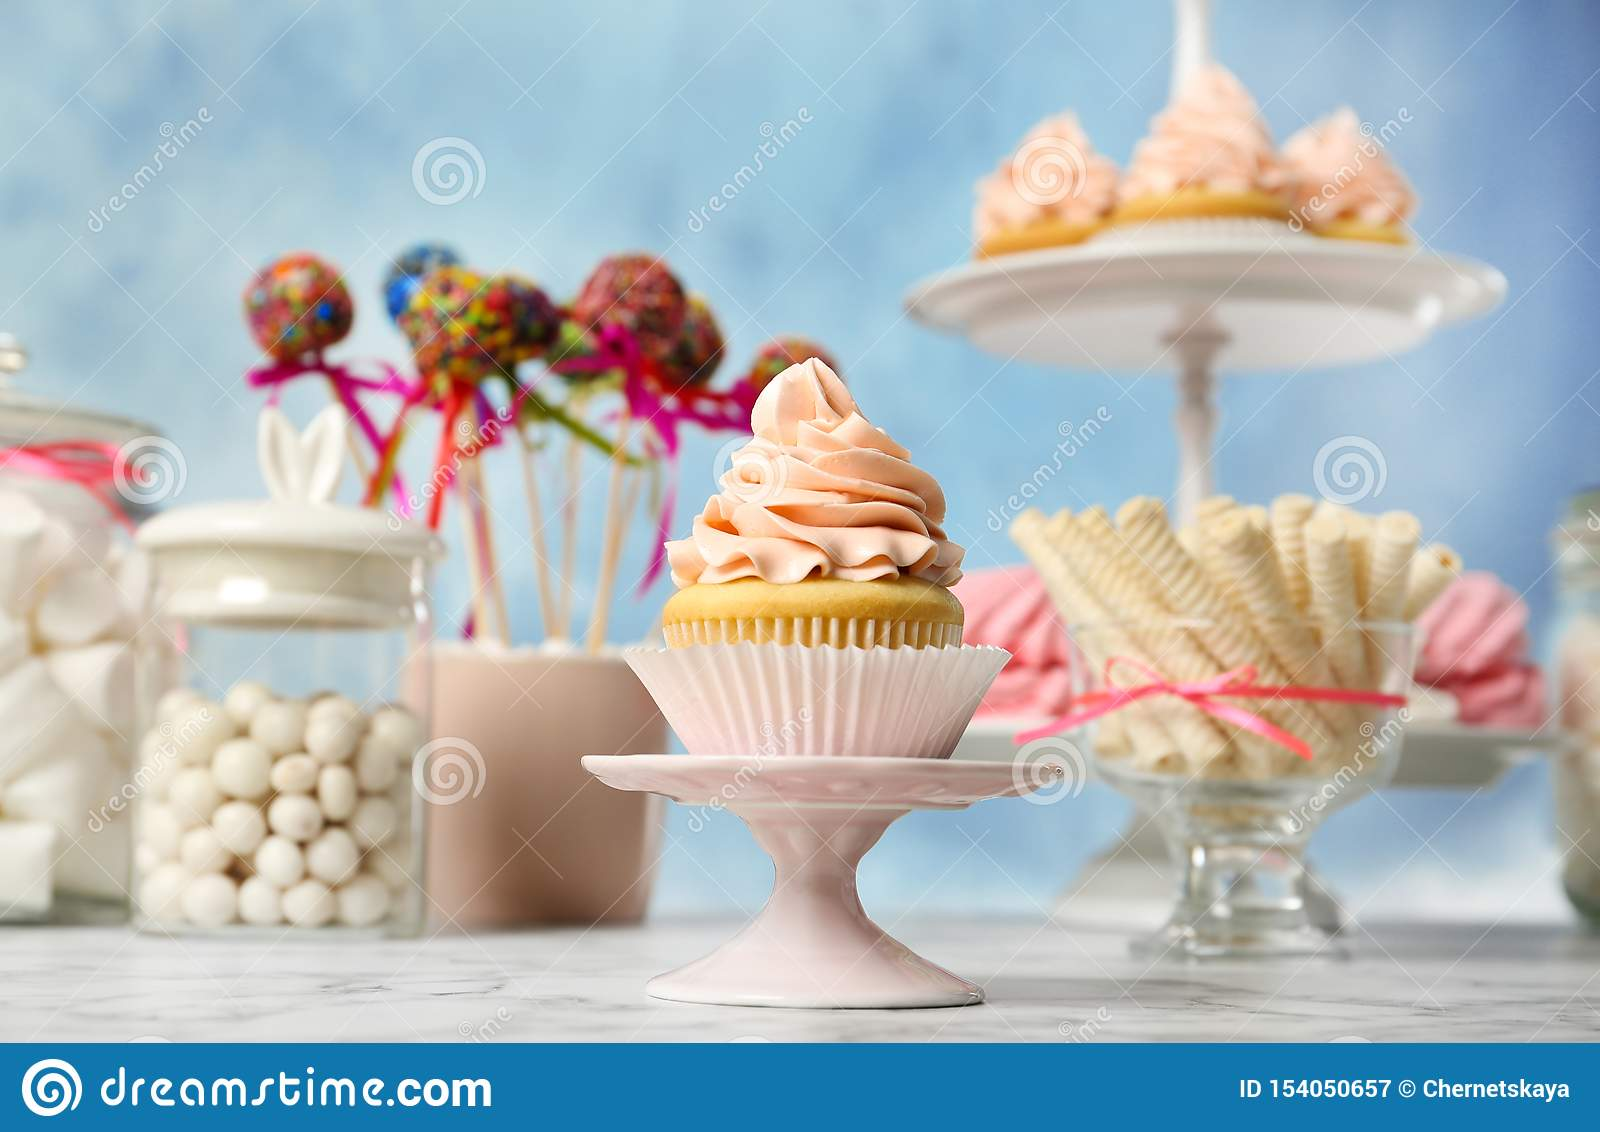 Candy bar with different sweets on white marble table